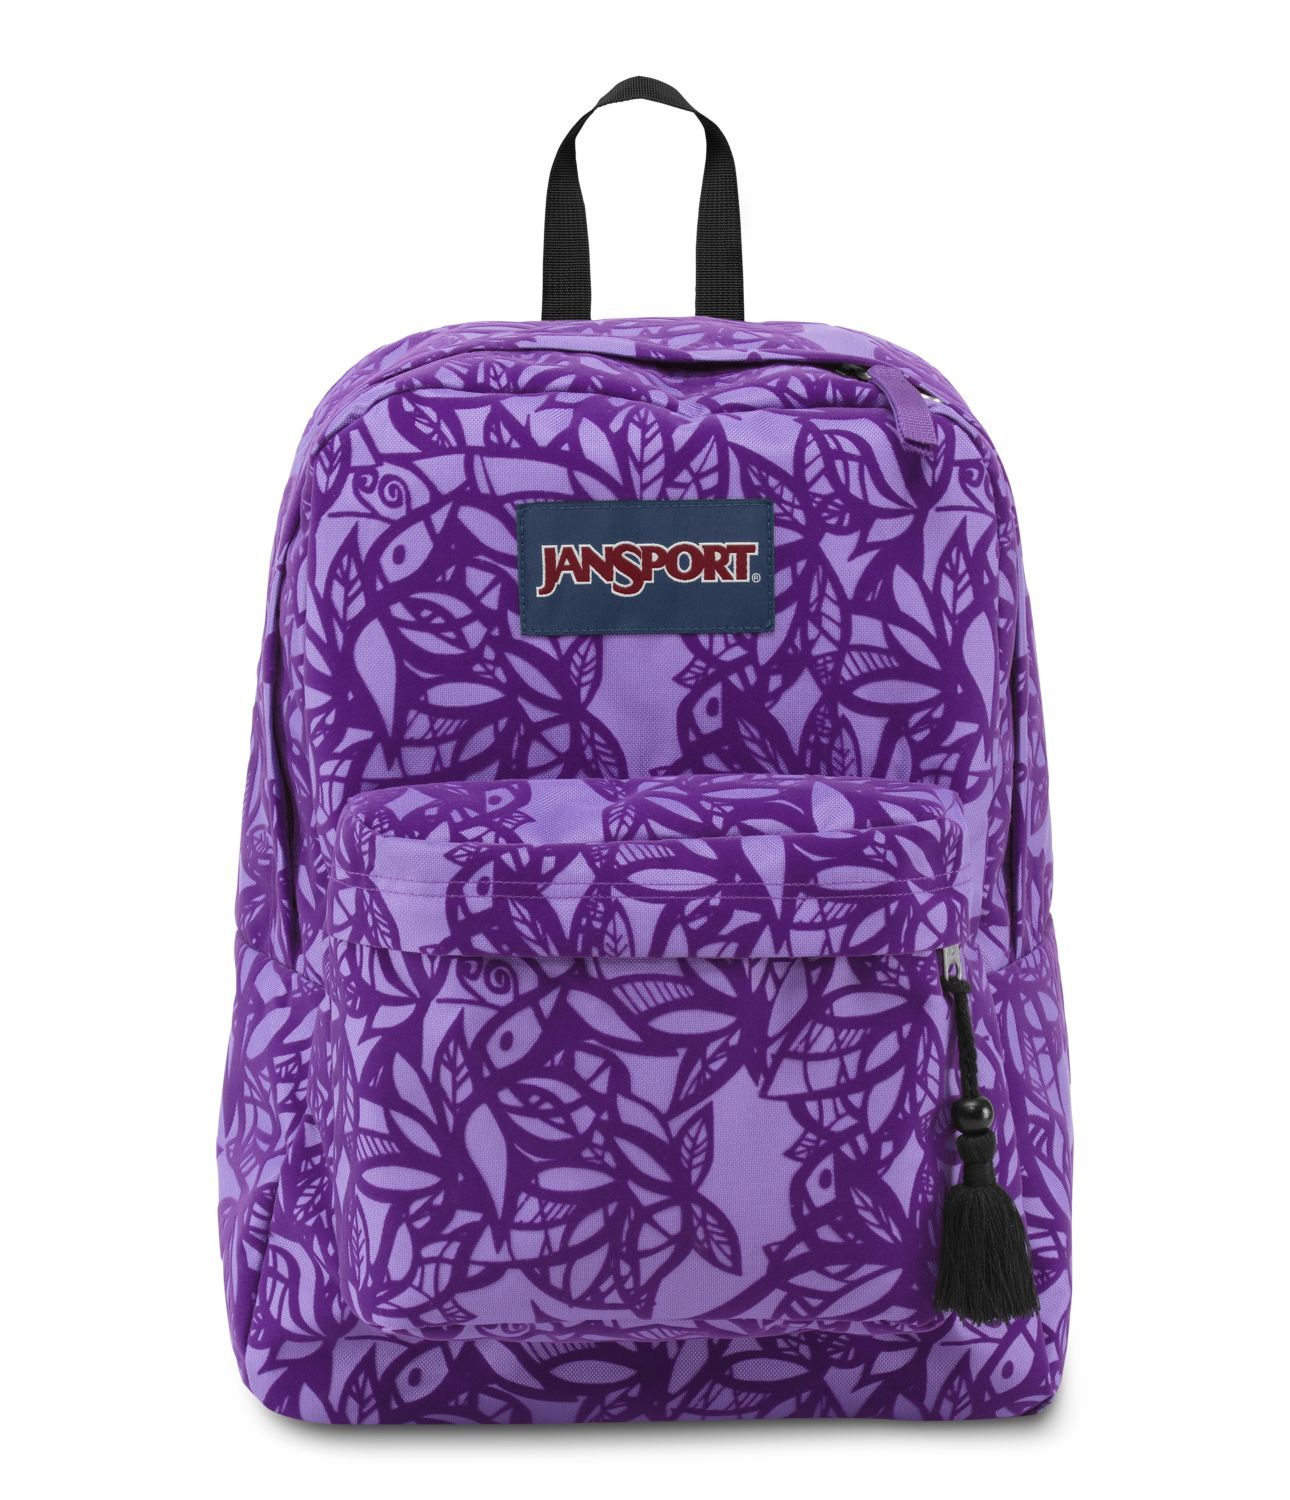 45b51950be35 Where Can I Get A Jansport Galaxy Backpack- Fenix Toulouse Handball